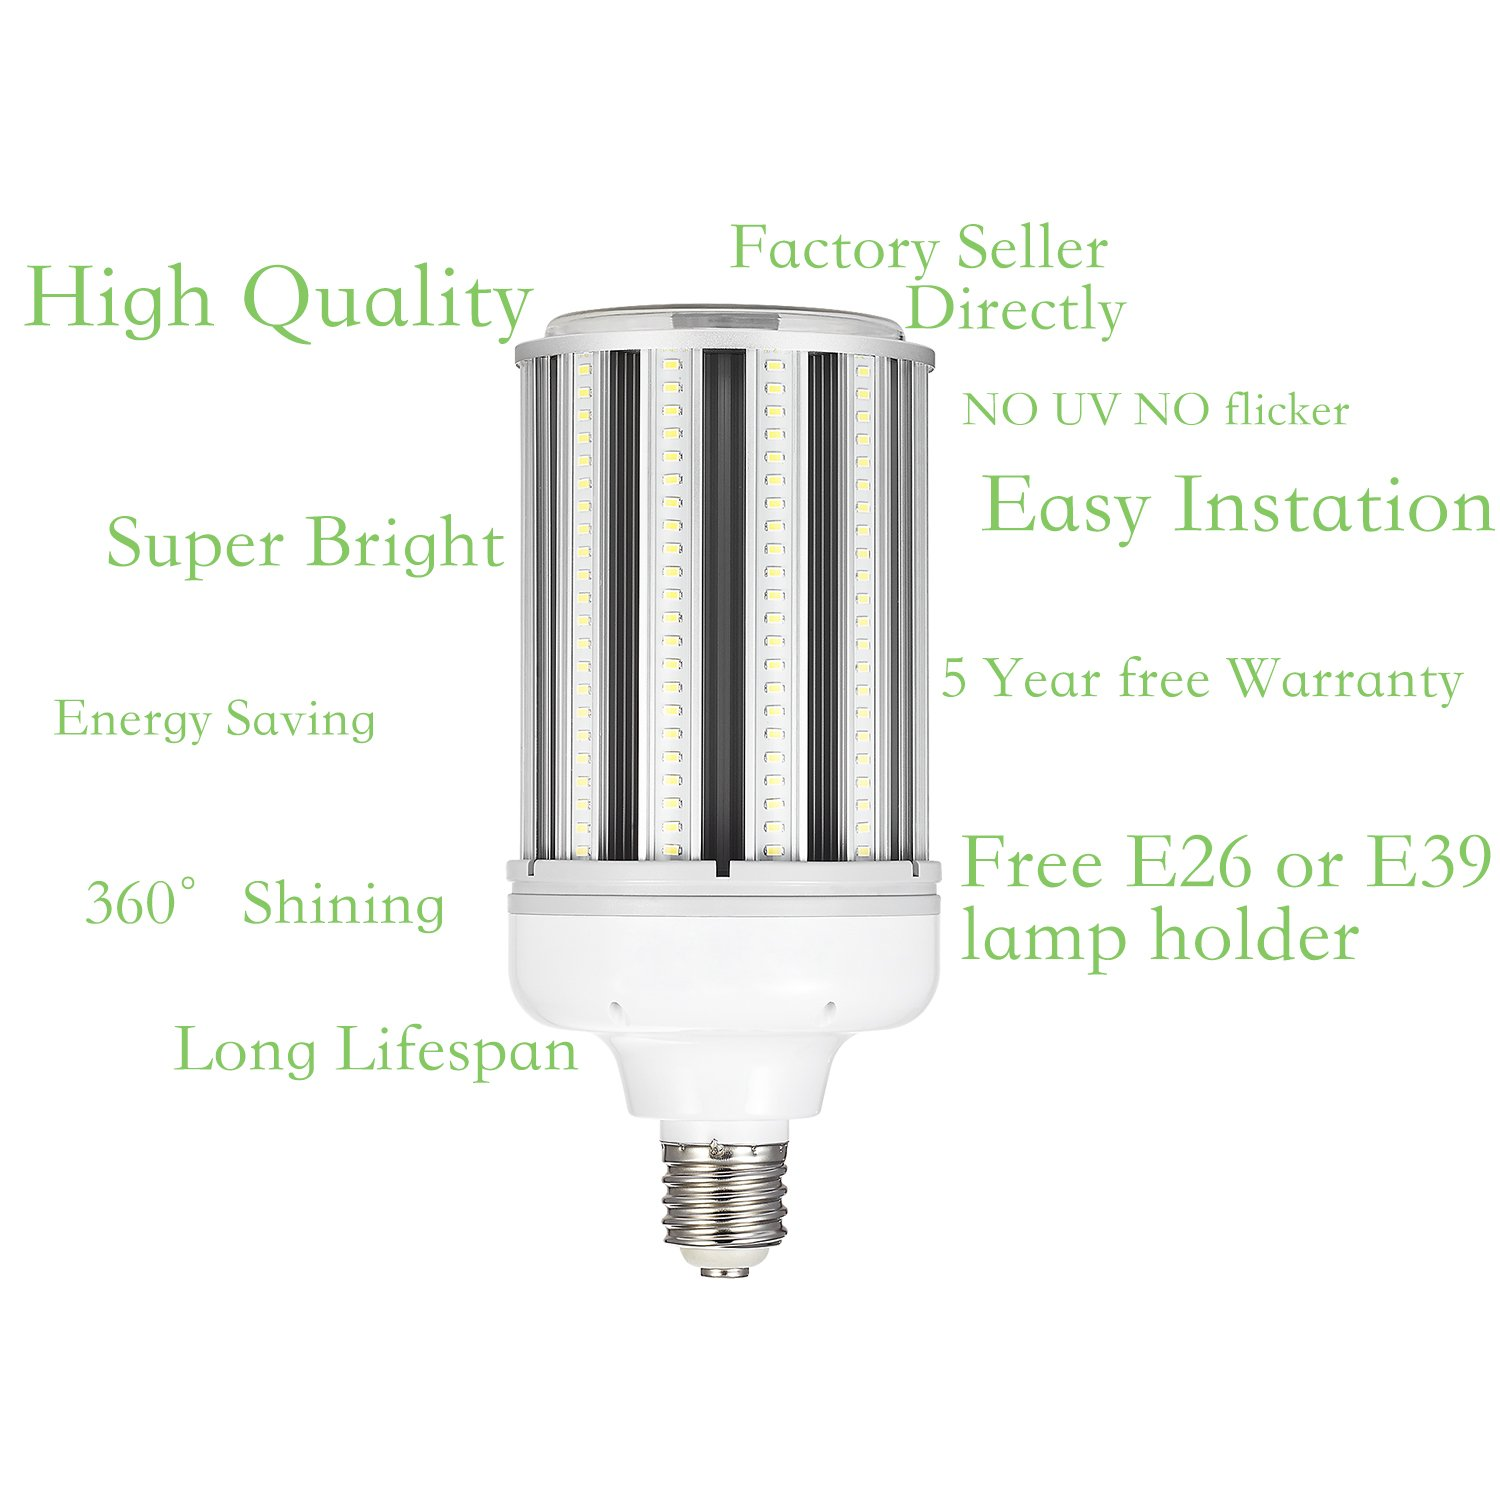 120w Led Corn cob Light Bulb E39 Base, 5000K 15600lm AC100-277V,CFL HID HPS Metal Halide(500w) Replacement for Street and Area Light Factory Warehouse High Bay Work Light Parking Lot Super by AINIYO (Image #3)